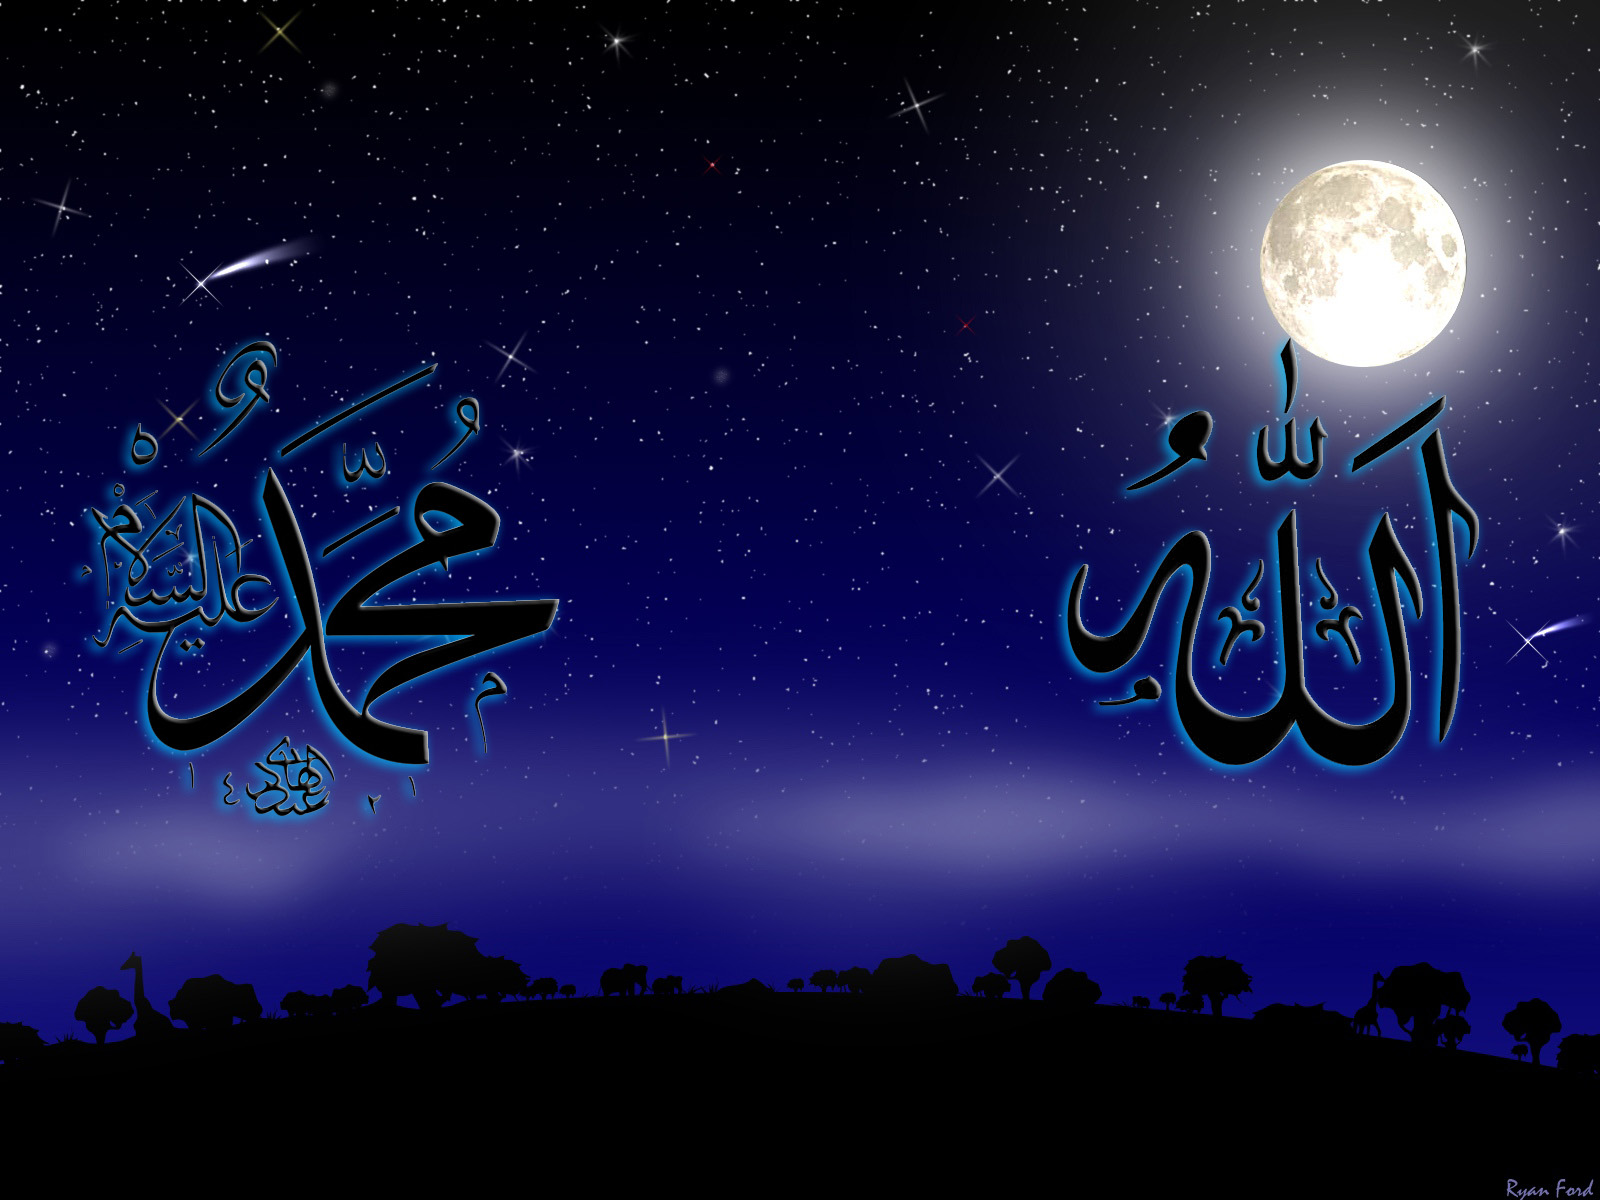 Allah%2Bwill%2Balways%2Bbe%2Bthere Beautiful Islamic Wallpapers Download